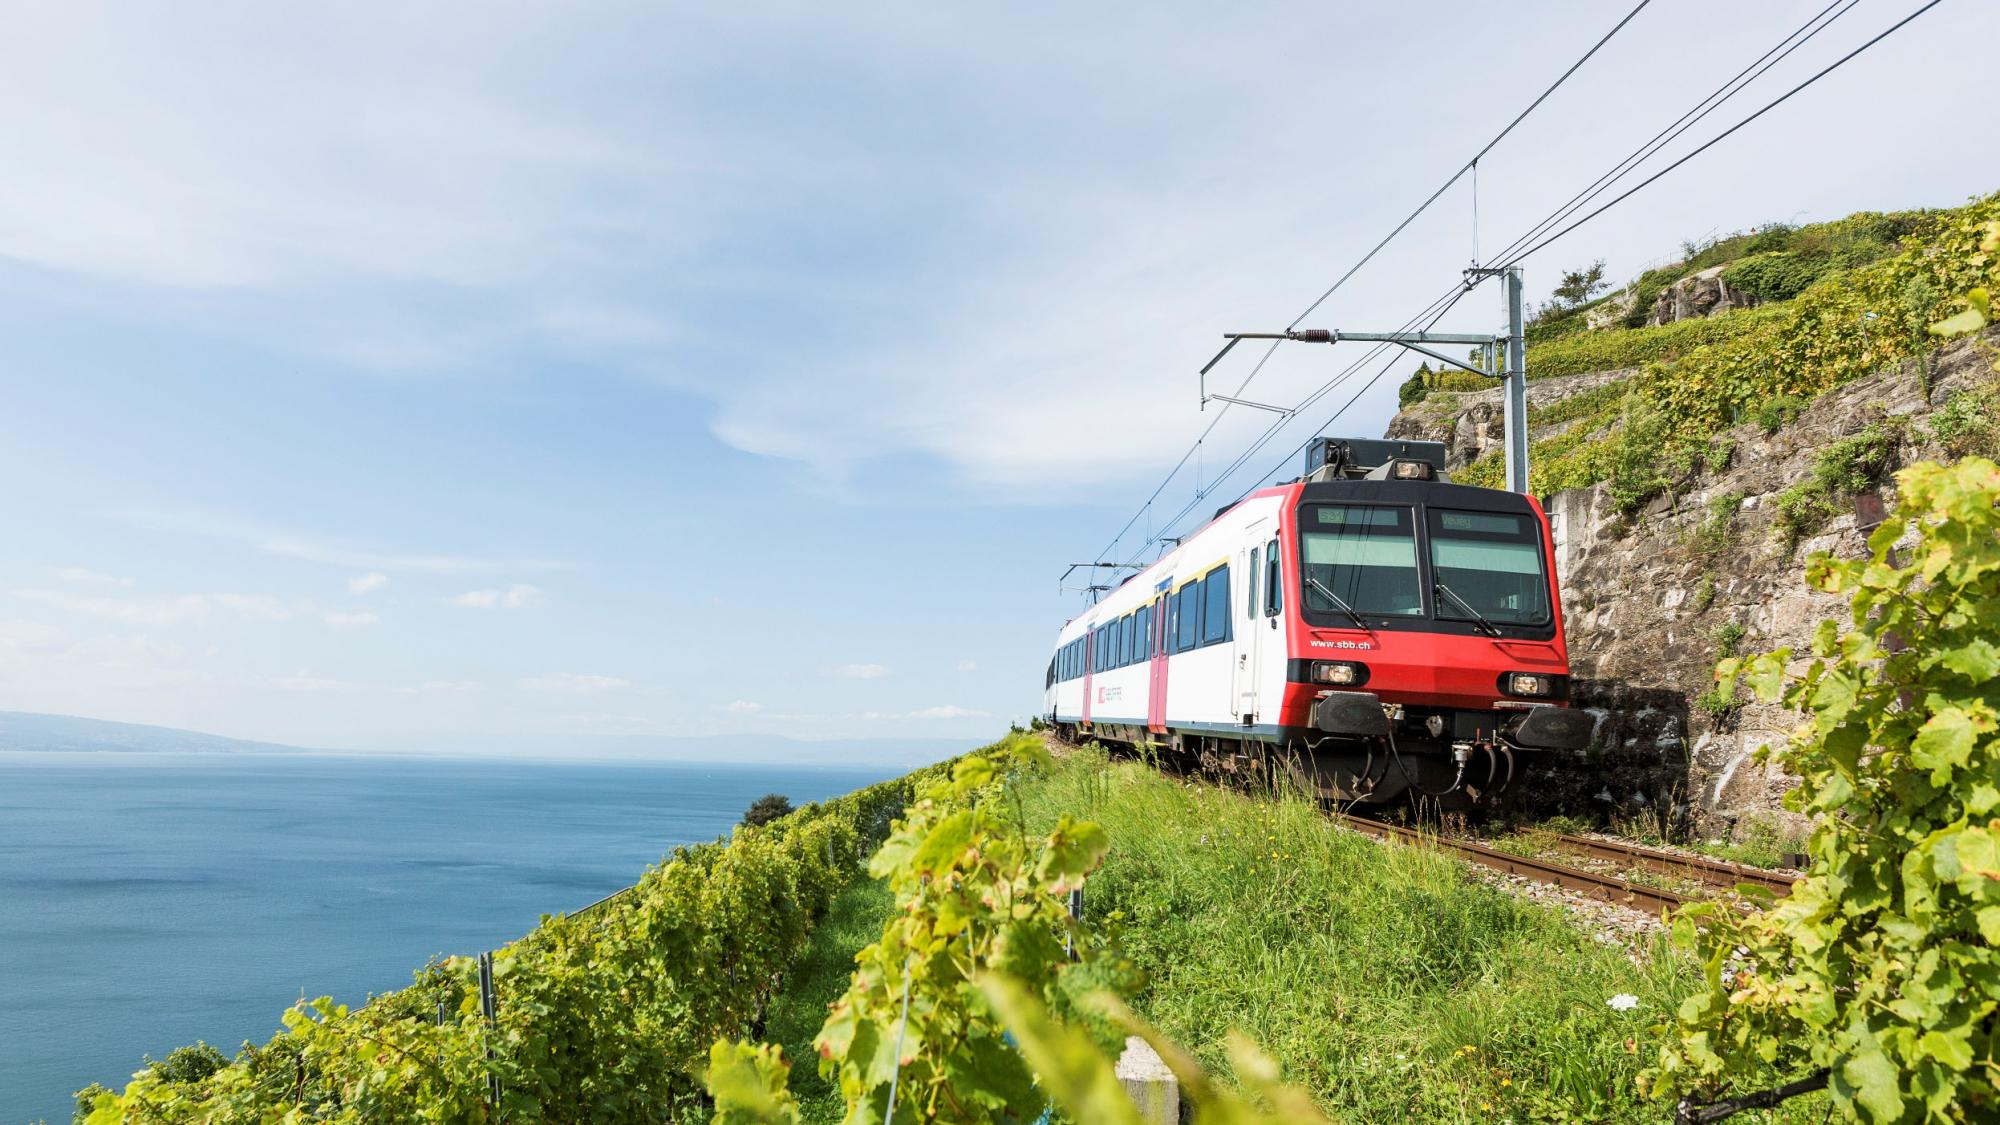 Train vignoble - © Guy Perrenoud